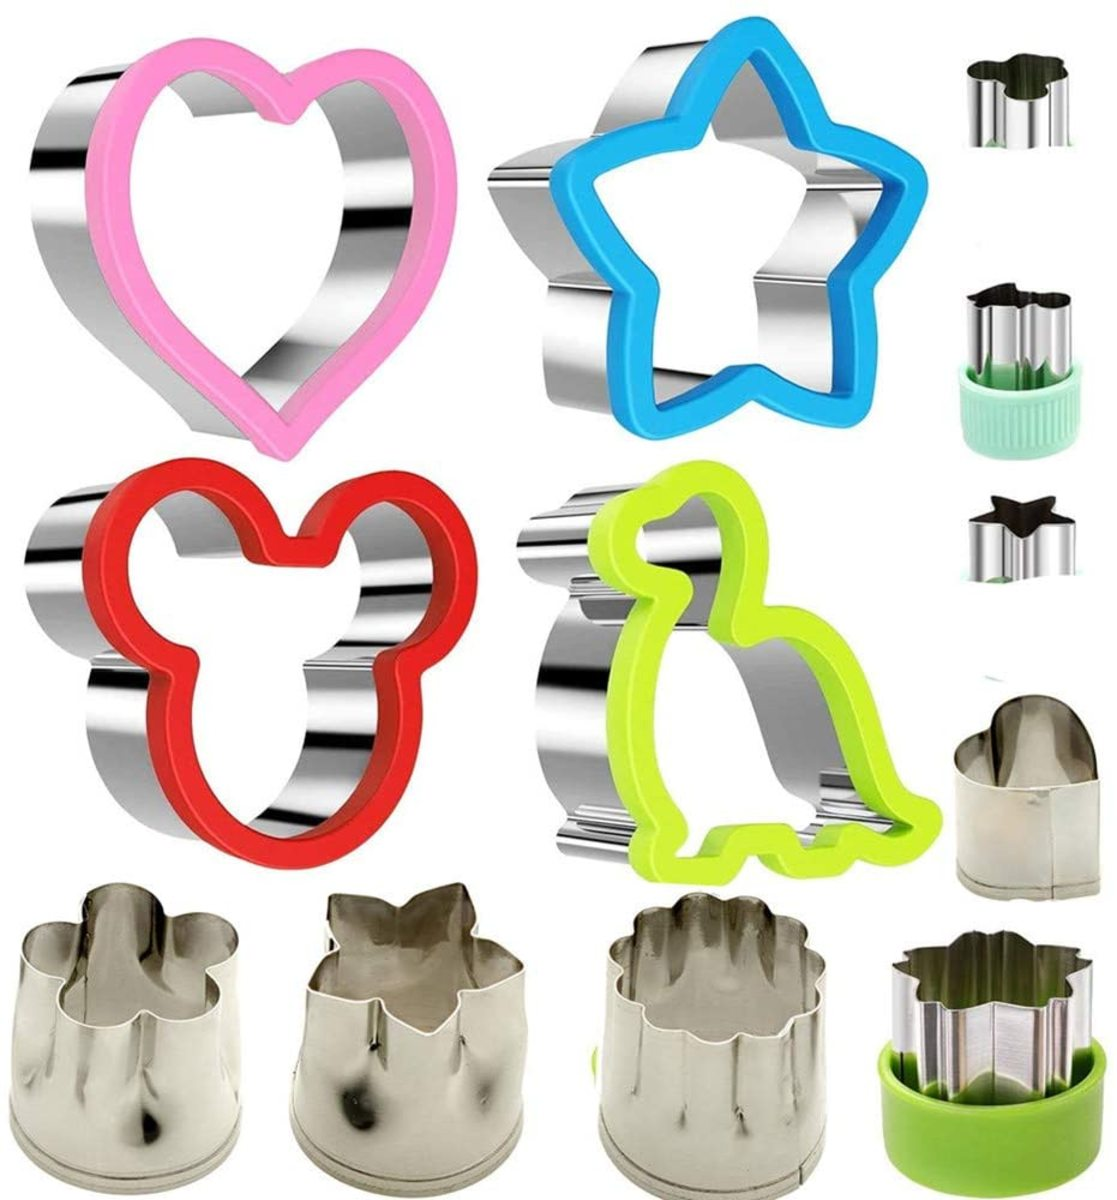 Stainless Steel Sandwiches Cutter set